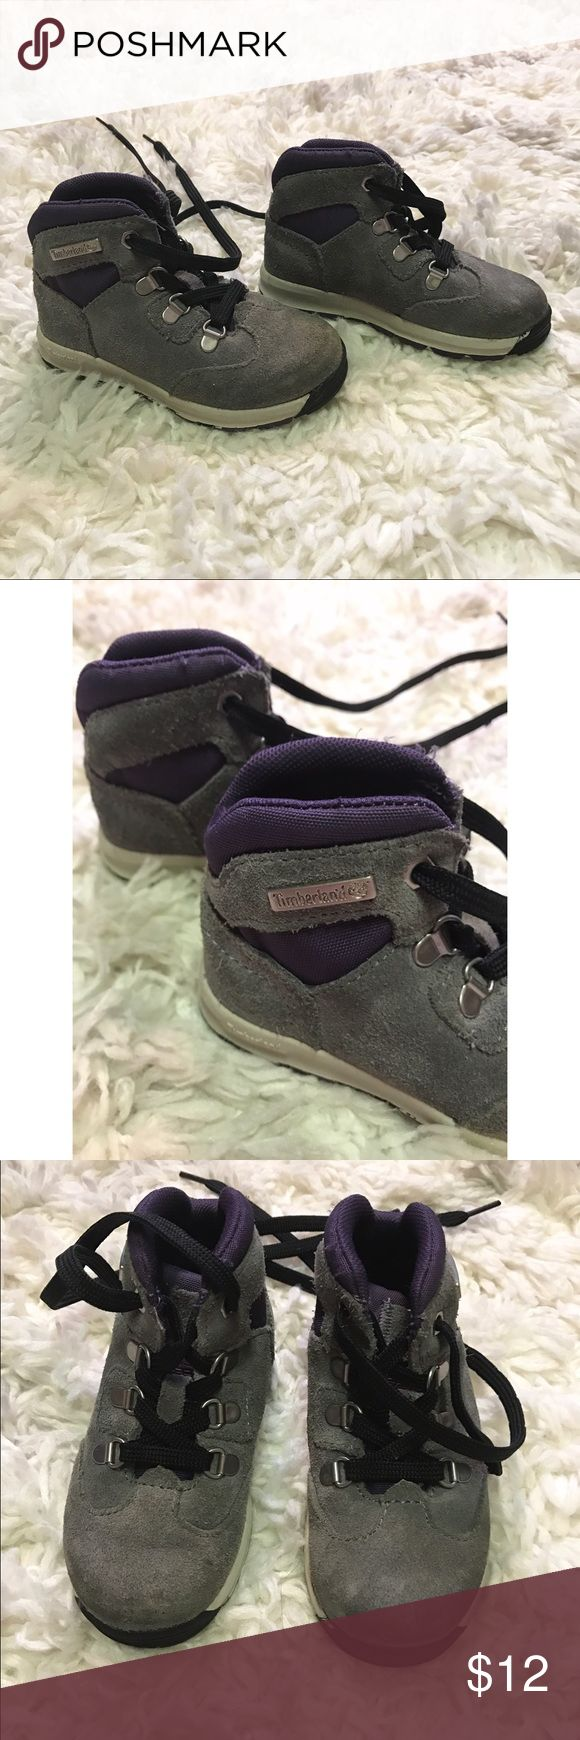 Toddler Timberland Boots Timberland Boots size 6! In excellent Condition! Gray and purple. Timberland Shoes Boots